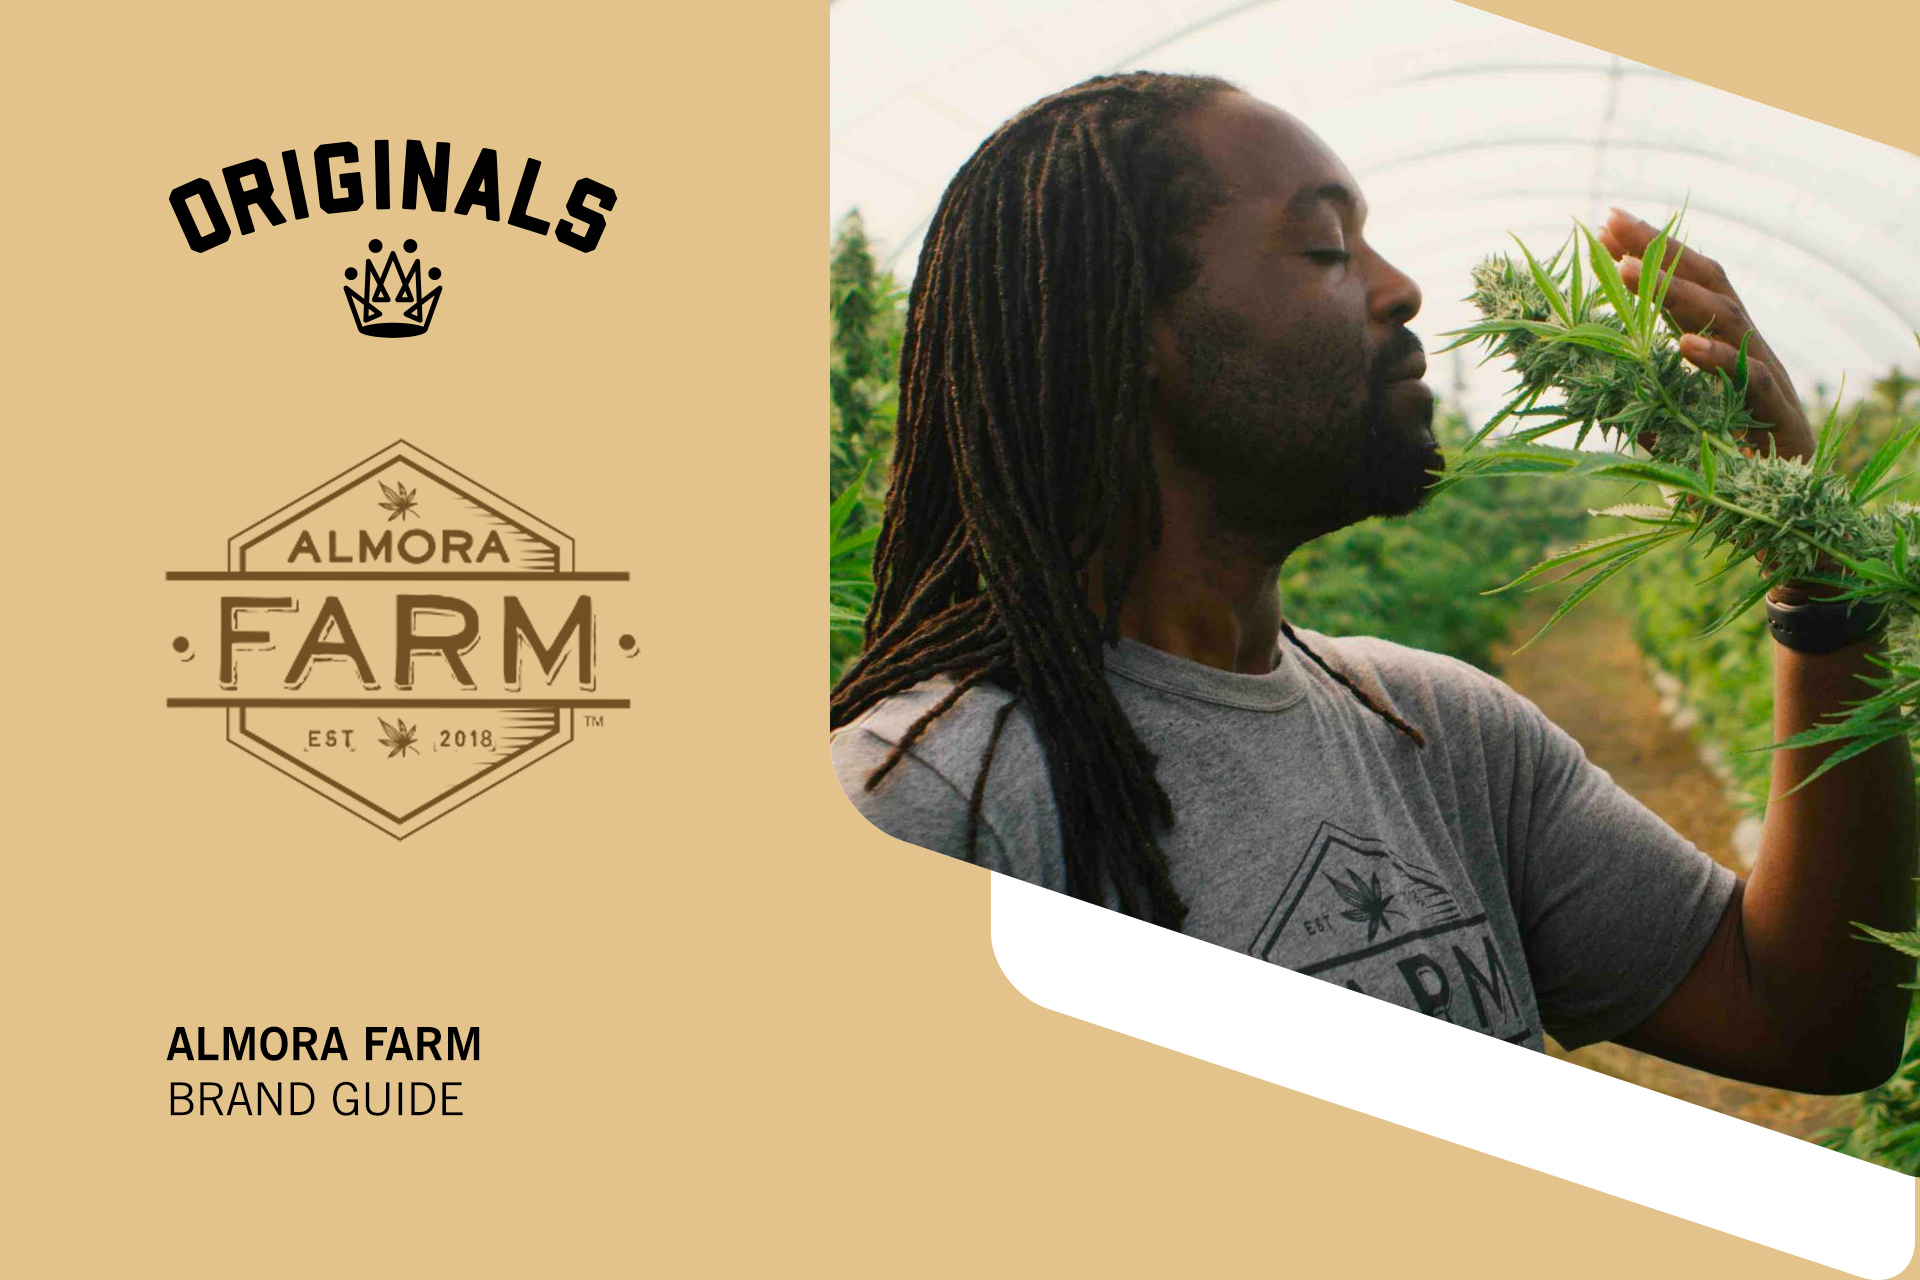 Almora Farm Brand Guide: Legacy Seeds and Craft Cannabis Products At Originals